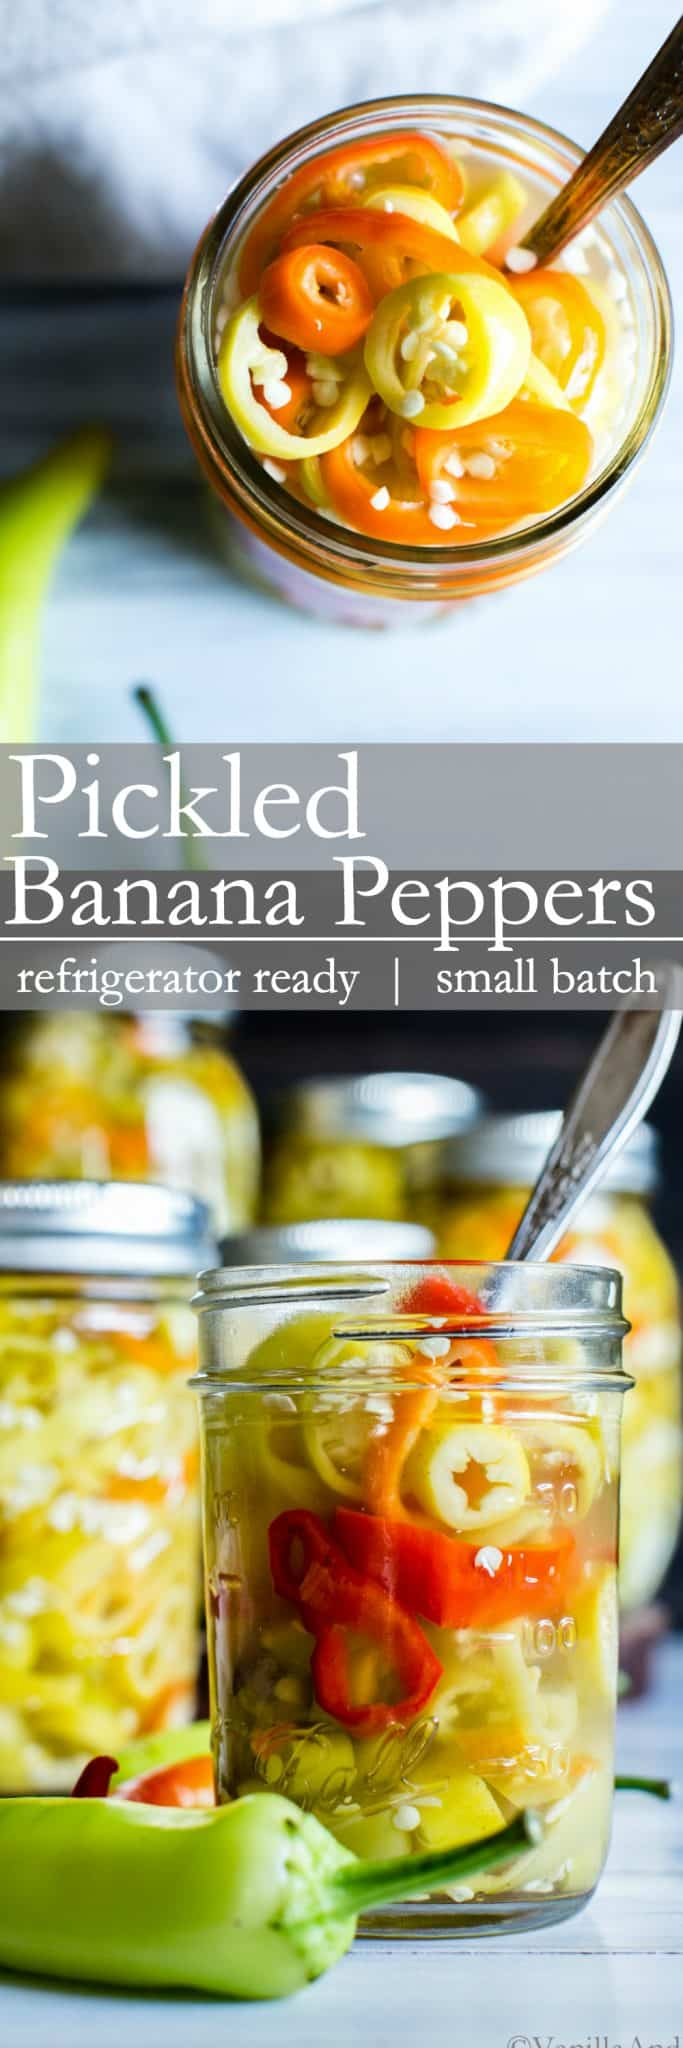 Super quick, refrigerator Pickled Banana Peppers are a fabulous component to sandwiches, pizza and for general snacking. Small batch and refrigerator ready! #vegan + #glutenfree